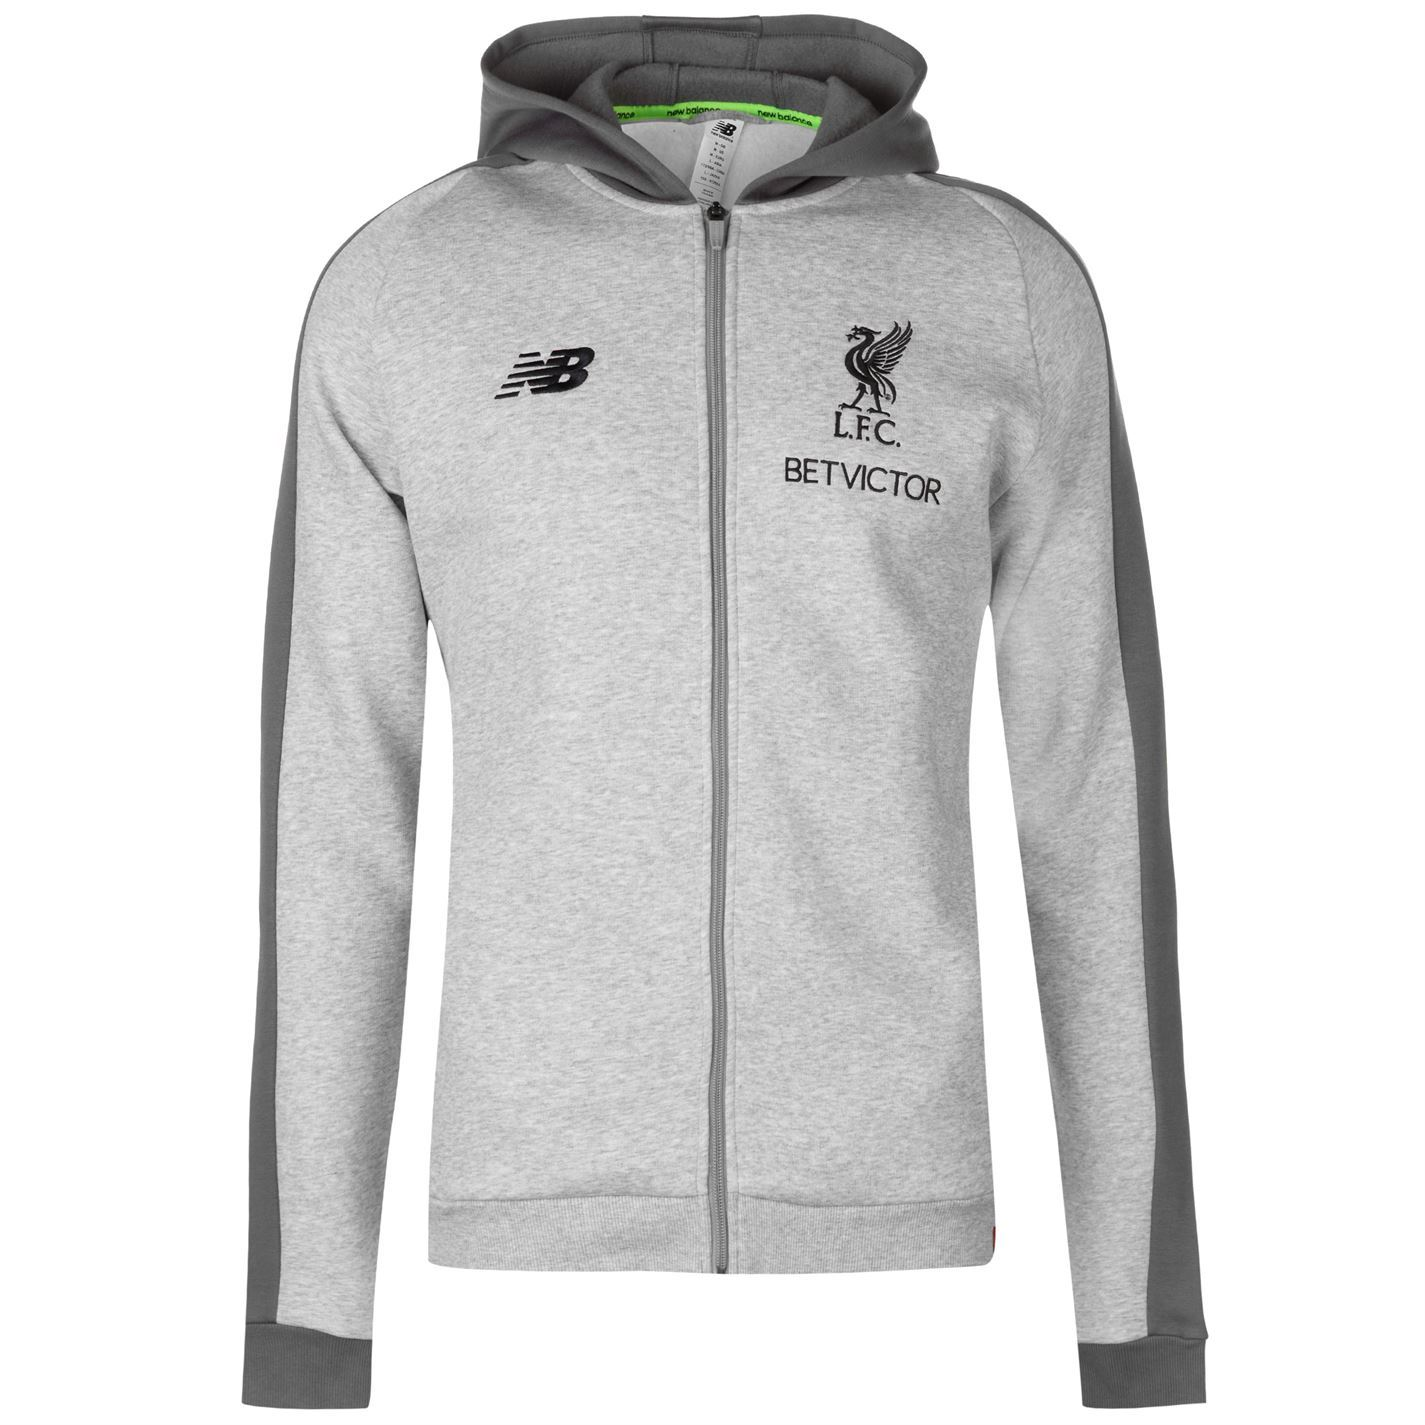 2f5525c3c0ba4 Details about New Balance Mens Liverpool Leisure Hoody 2018 2019  Performance Hoodie Hooded Top